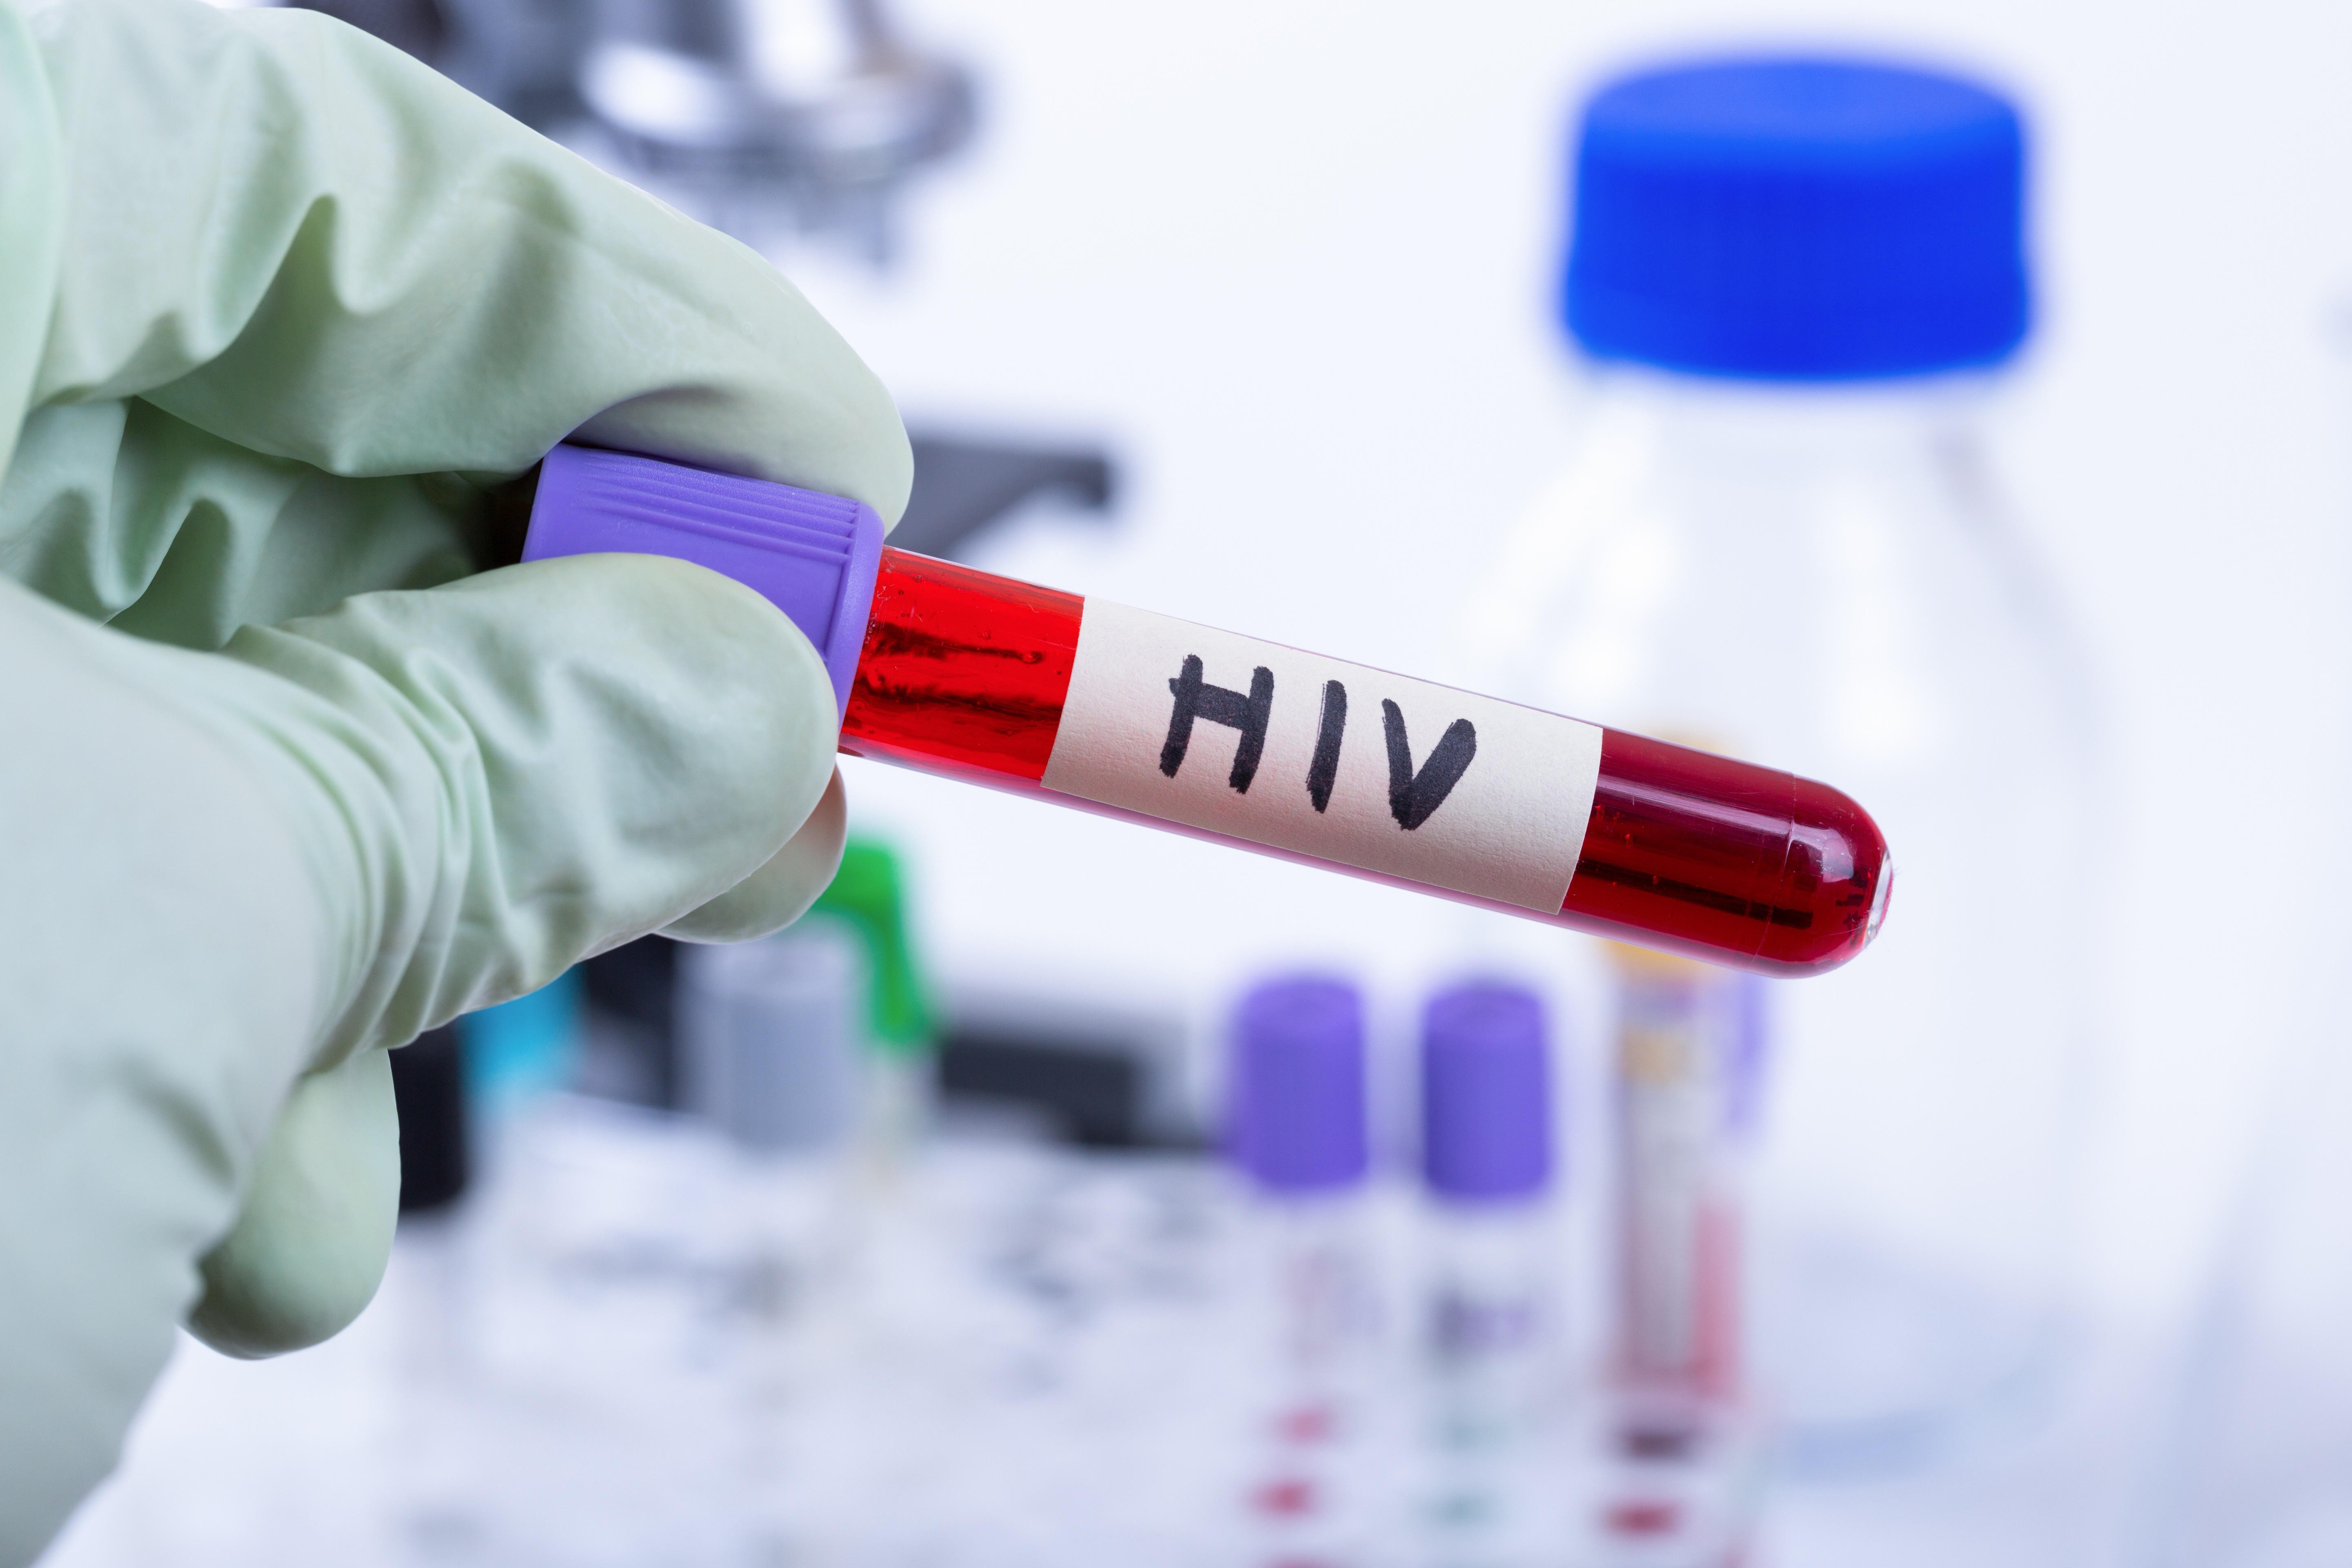 New implant and vaccine trial offer fresh HIV hope | South China